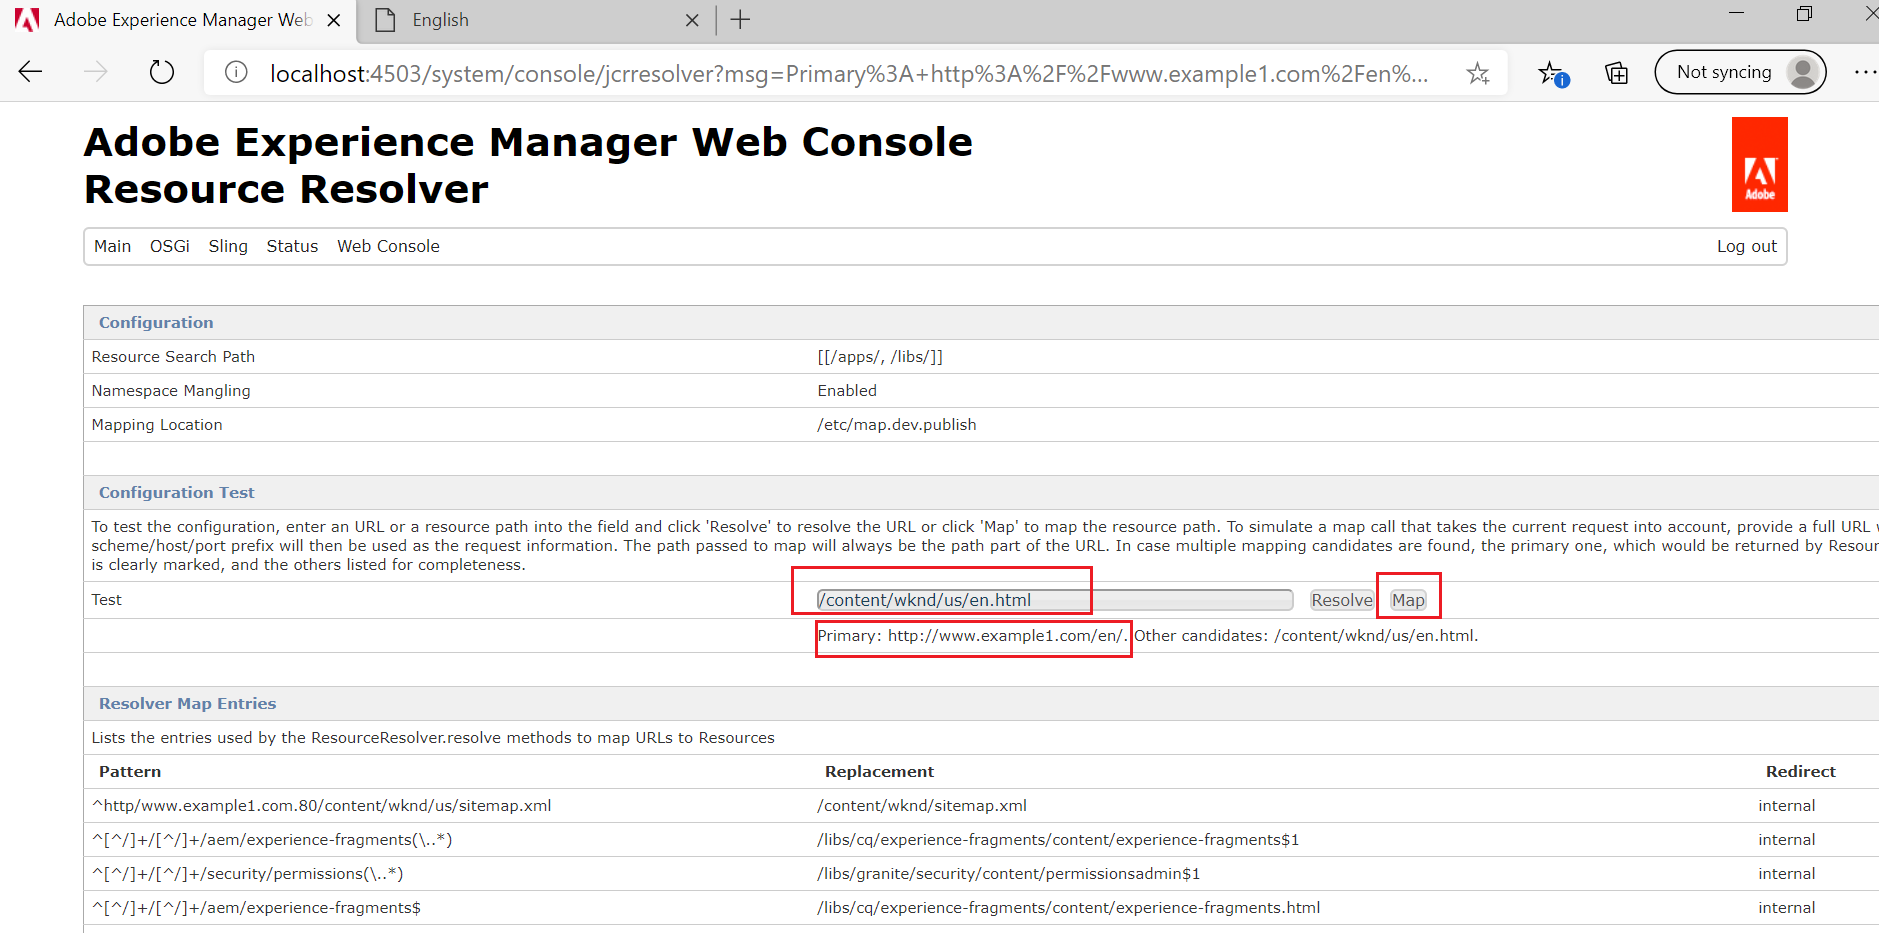 sling-resource-mapping-in-adobe-experience-manager